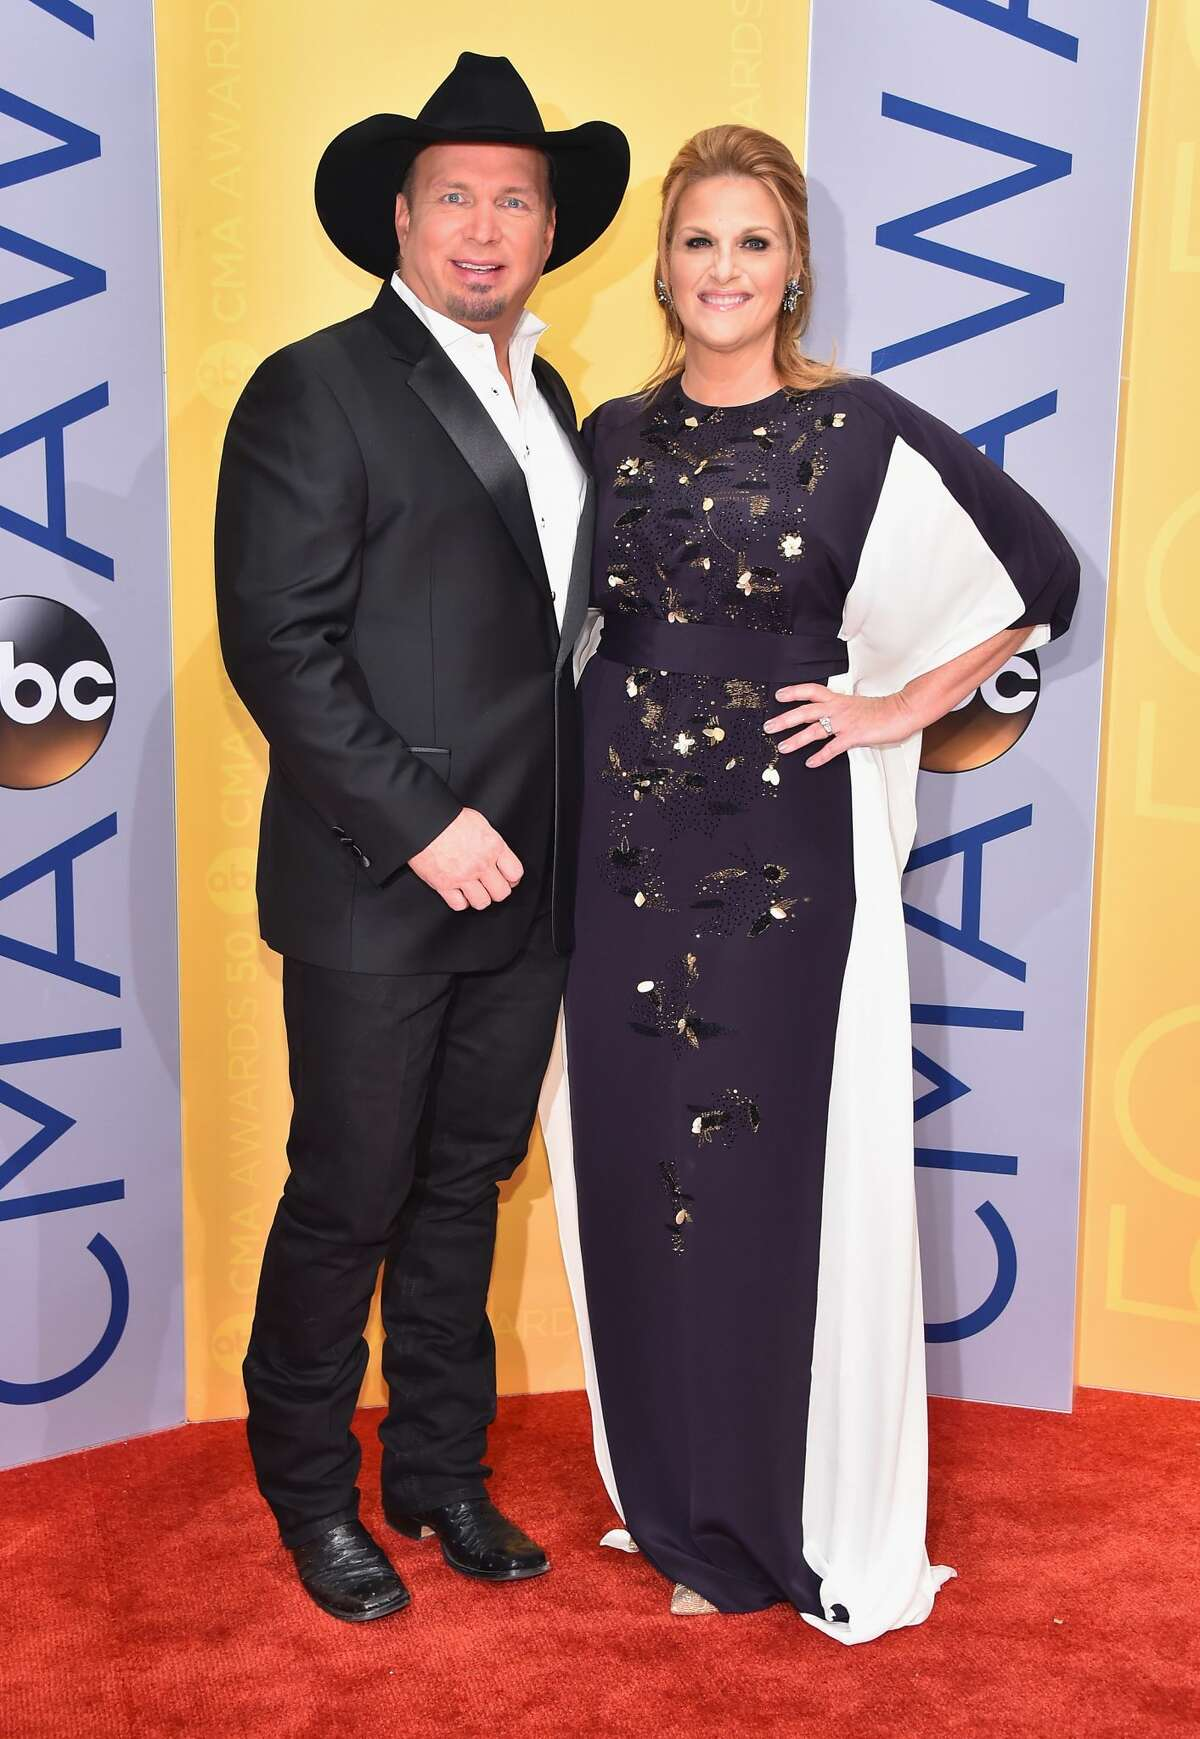 Singer-songwriters Garth Brooks and Trisha Yearwood attend the 50th annual CMA Awards at the Bridgestone Arena on November 2, 2016 in Nashville, Tennessee.